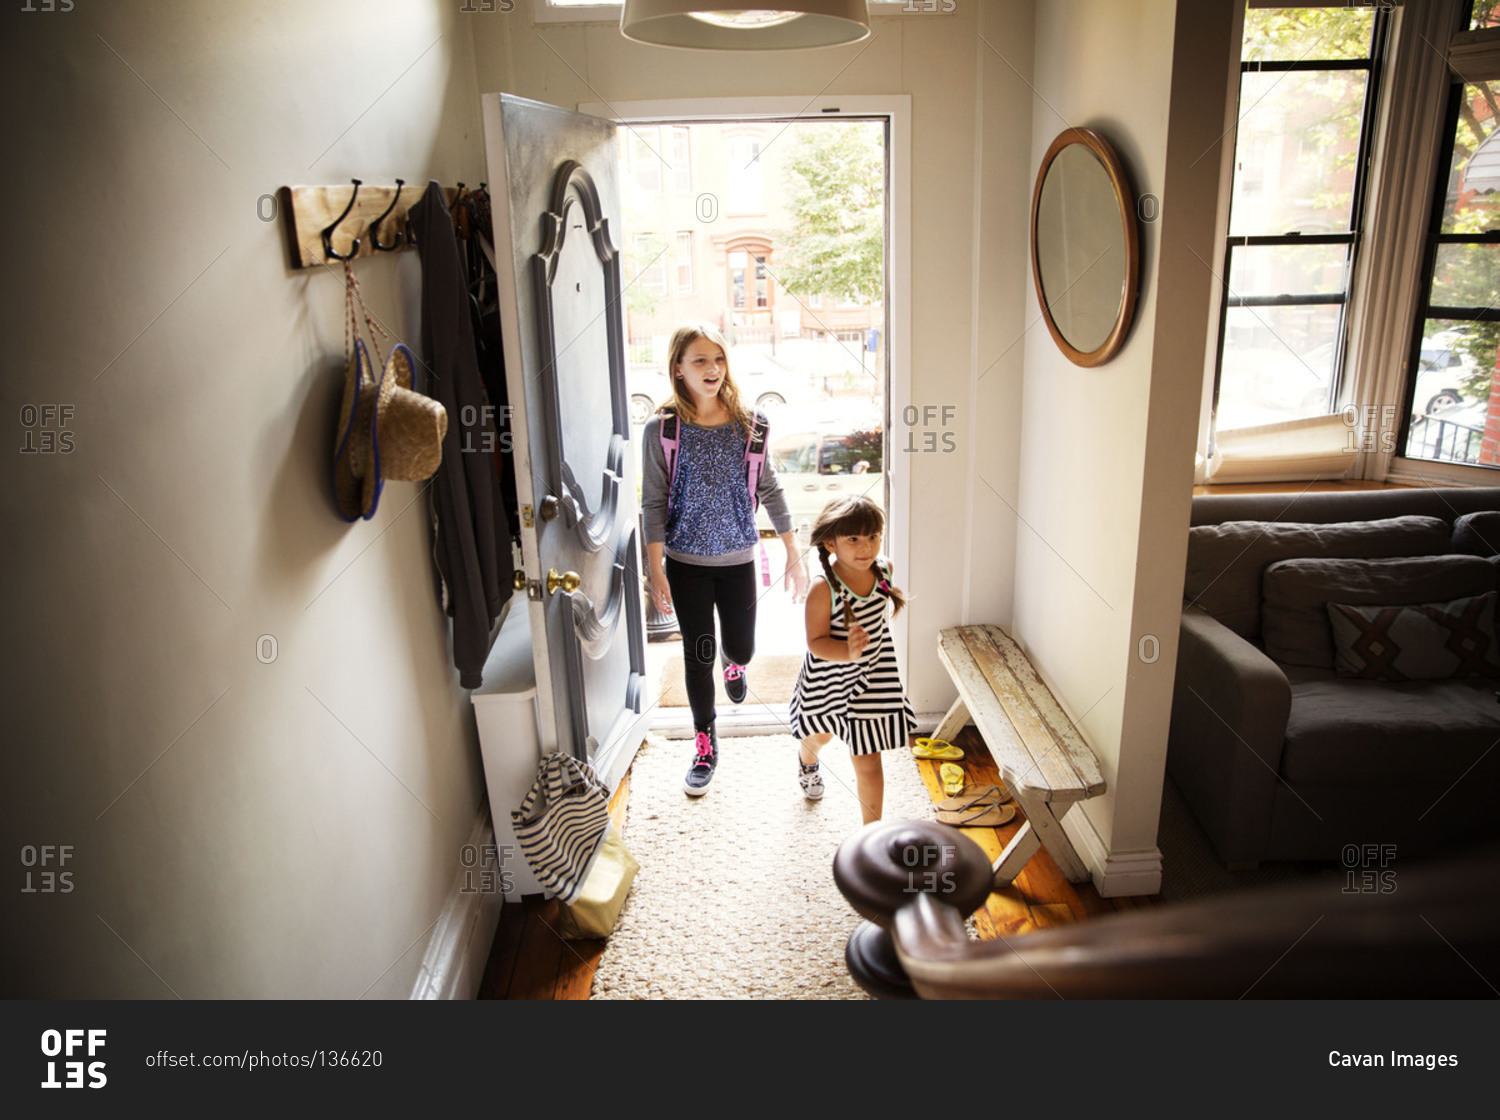 Children arriving home from school stock photo - OFFSET